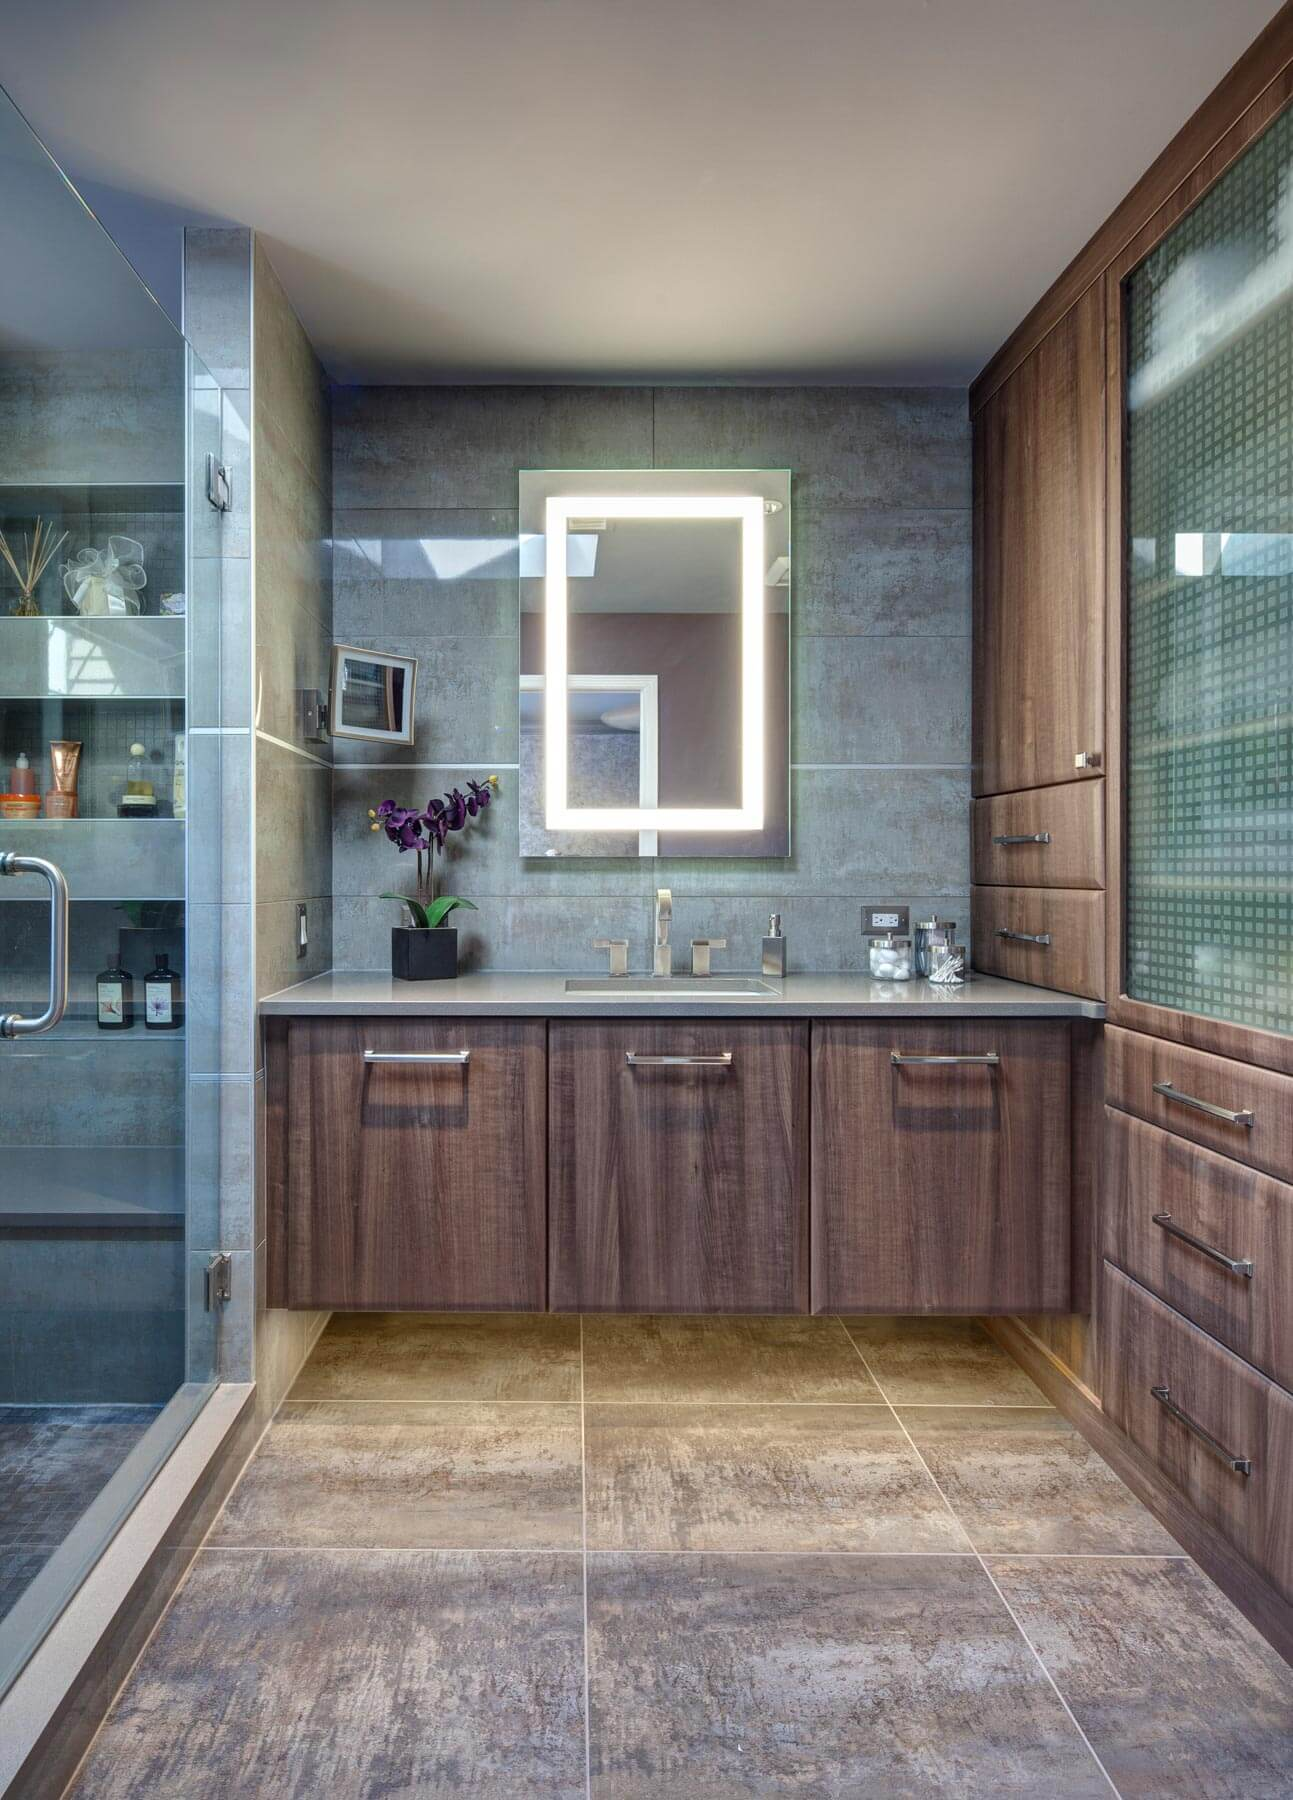 Bathroom features large format natural colored materials and a vanity mirror with internal lighting. A palate of soothing brown and blues were utilized throughout this newly remodeled primary bath, while functionality was added via an array of shower shelving and cabinetry.